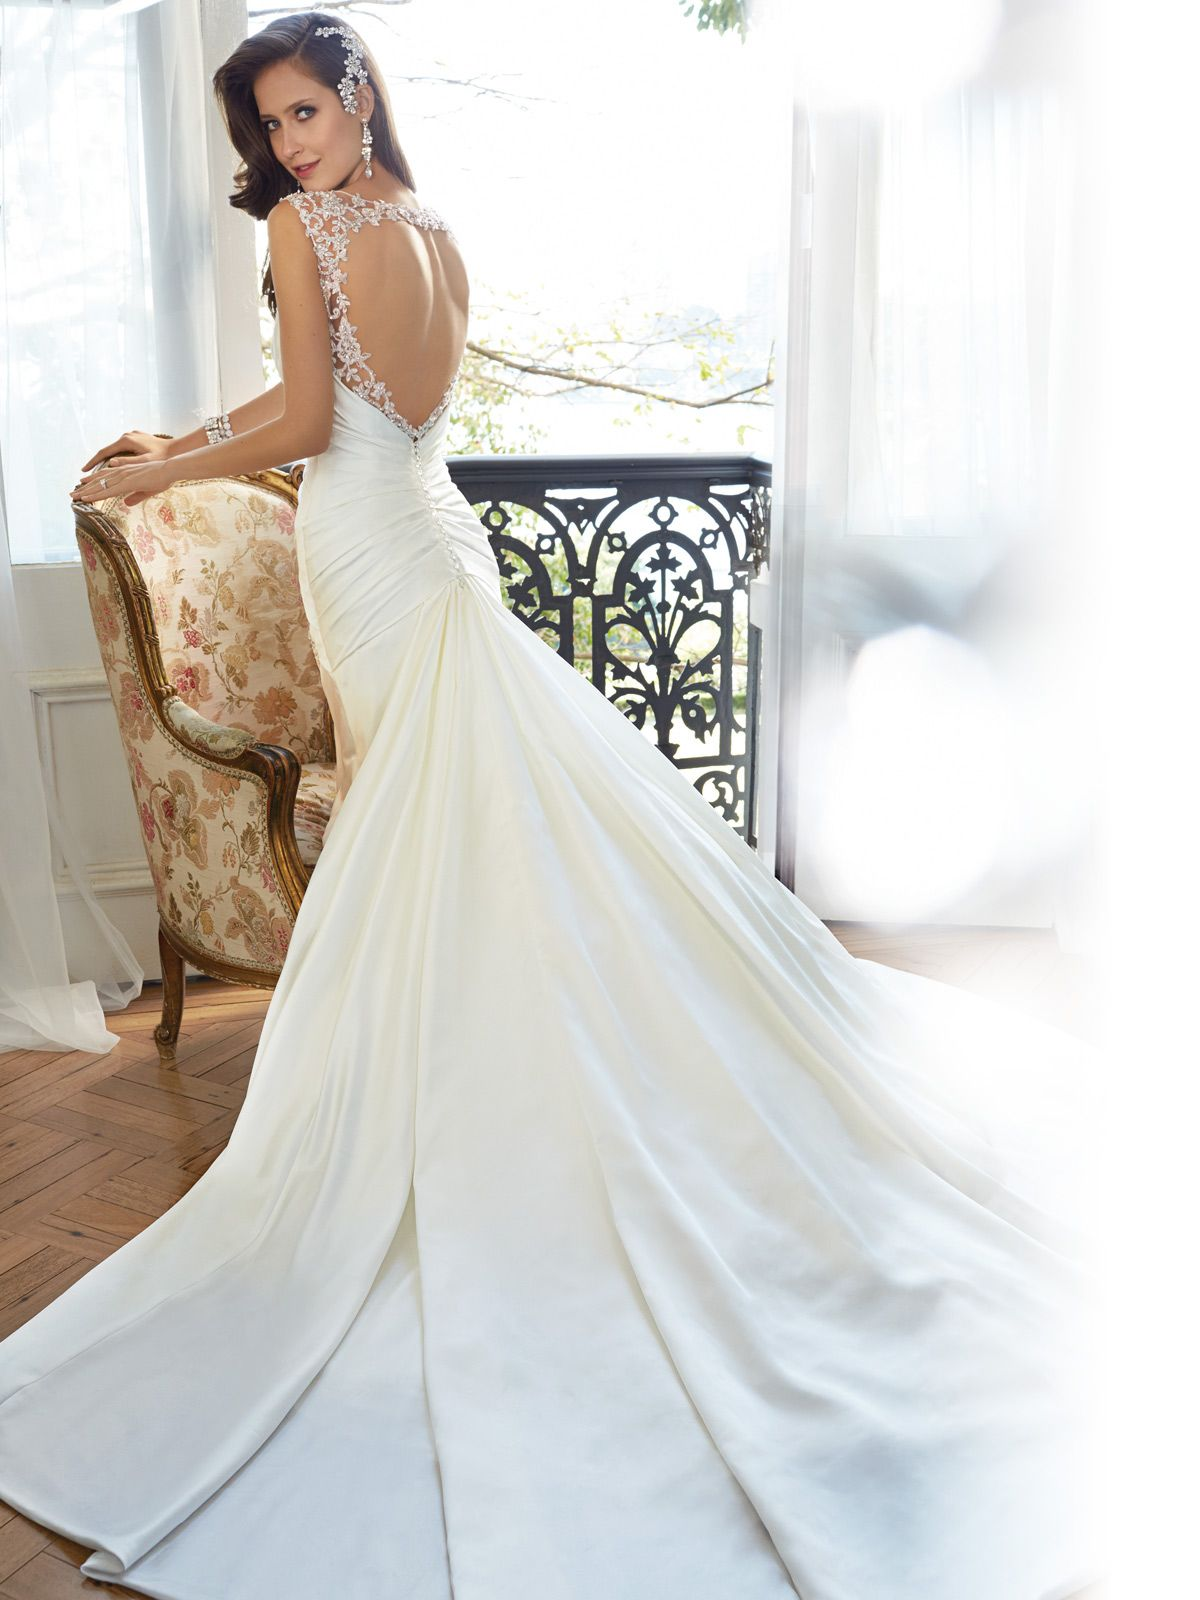 View dress sophia tolli spring collection y mynah